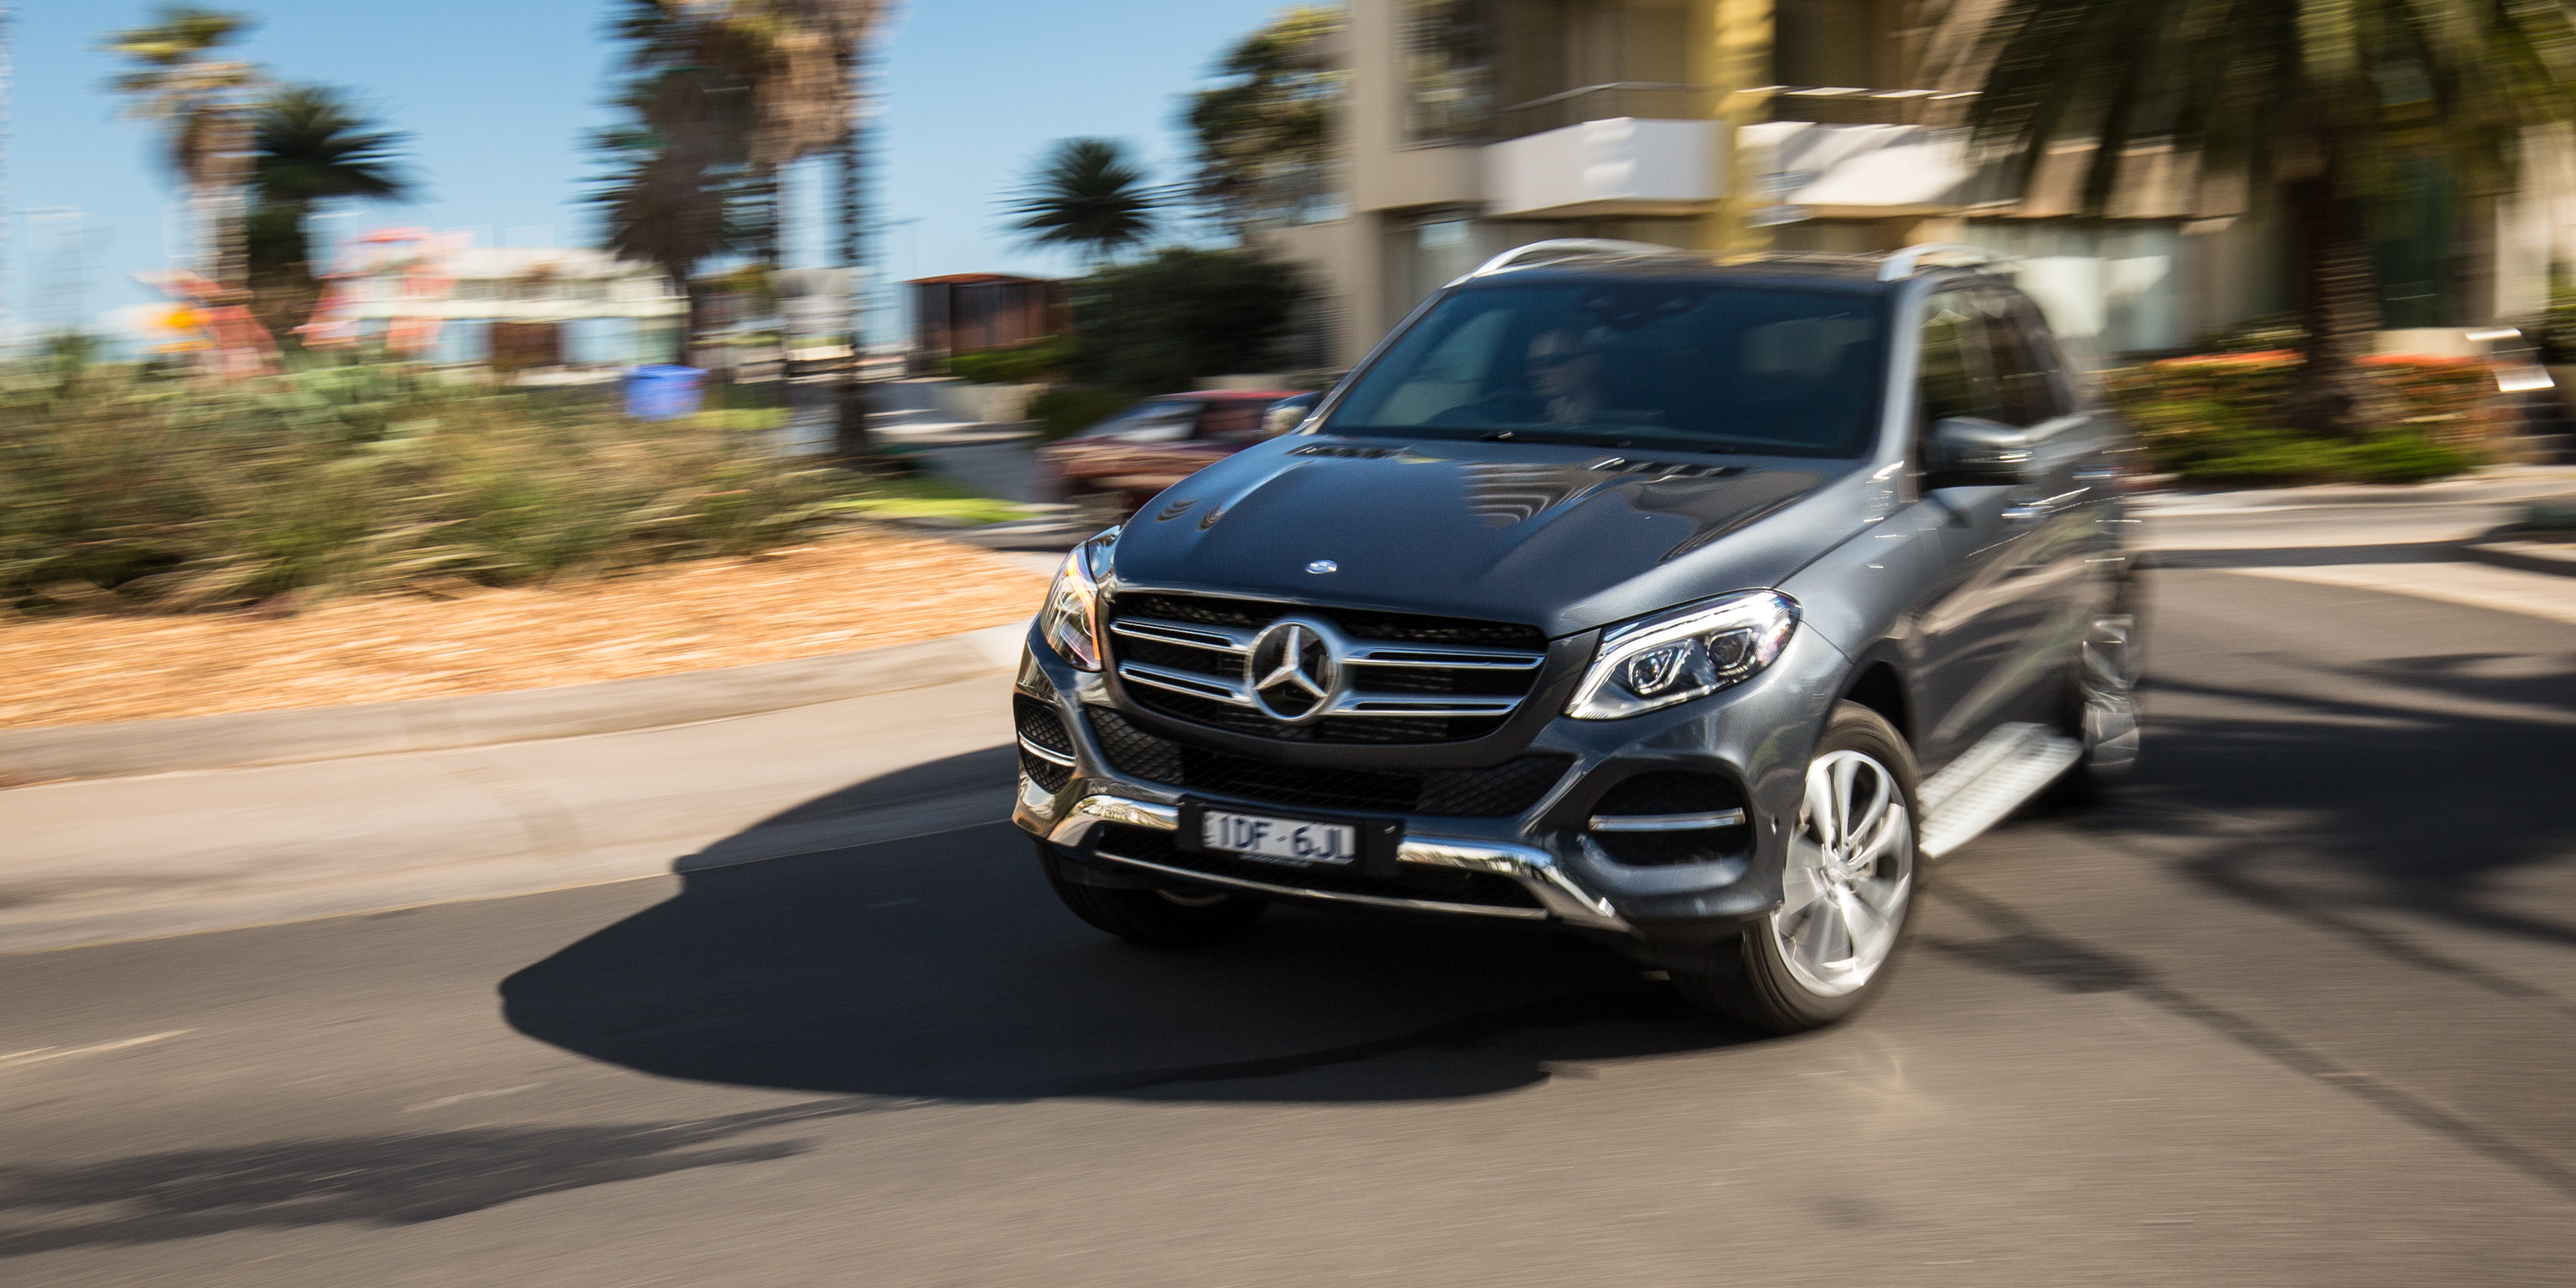 2016 mercedes benz gle 250d review caradvice for Pictures of a mercedes benz